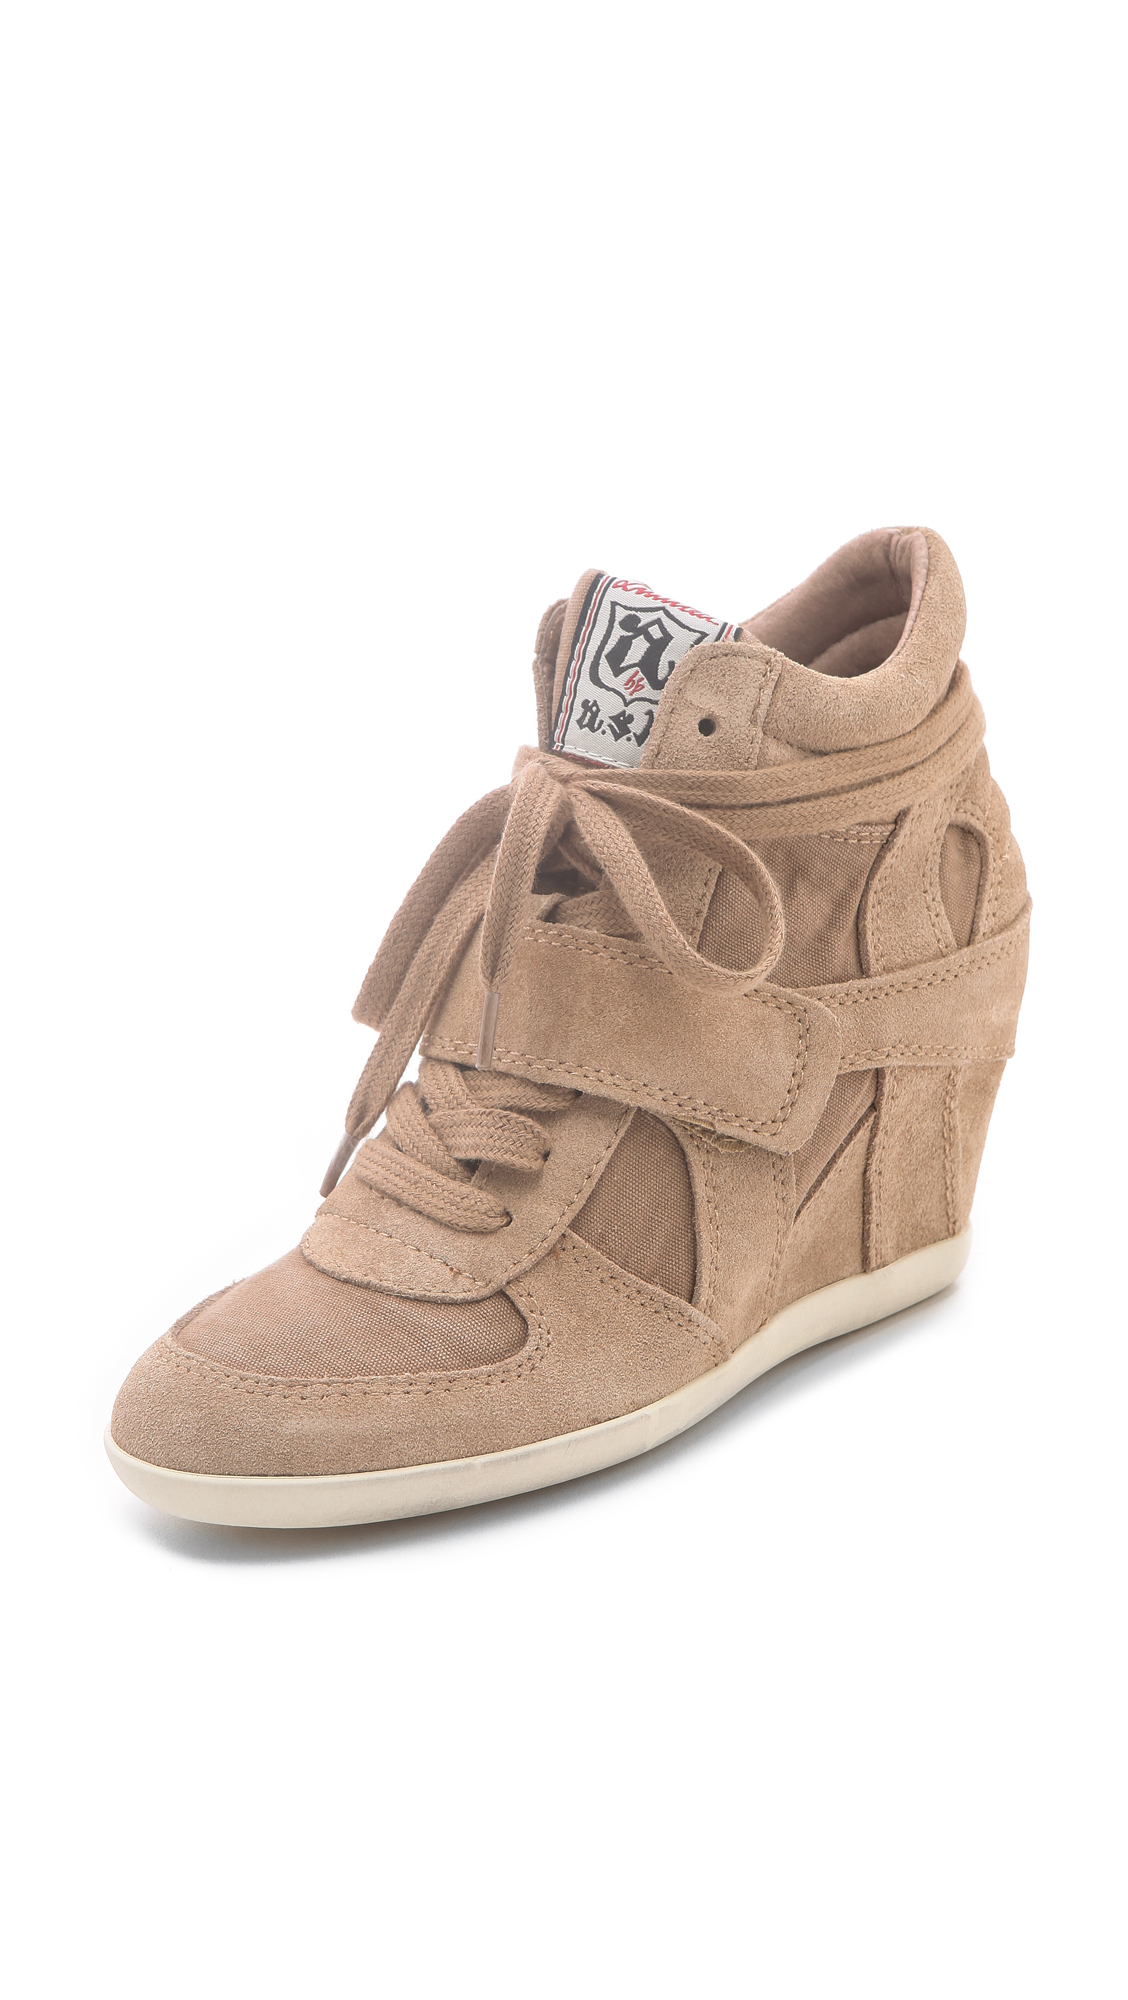 1ae048e9dbb5 Ash Bowie Suede Sneakers with Hidden Wedge on PopScreen